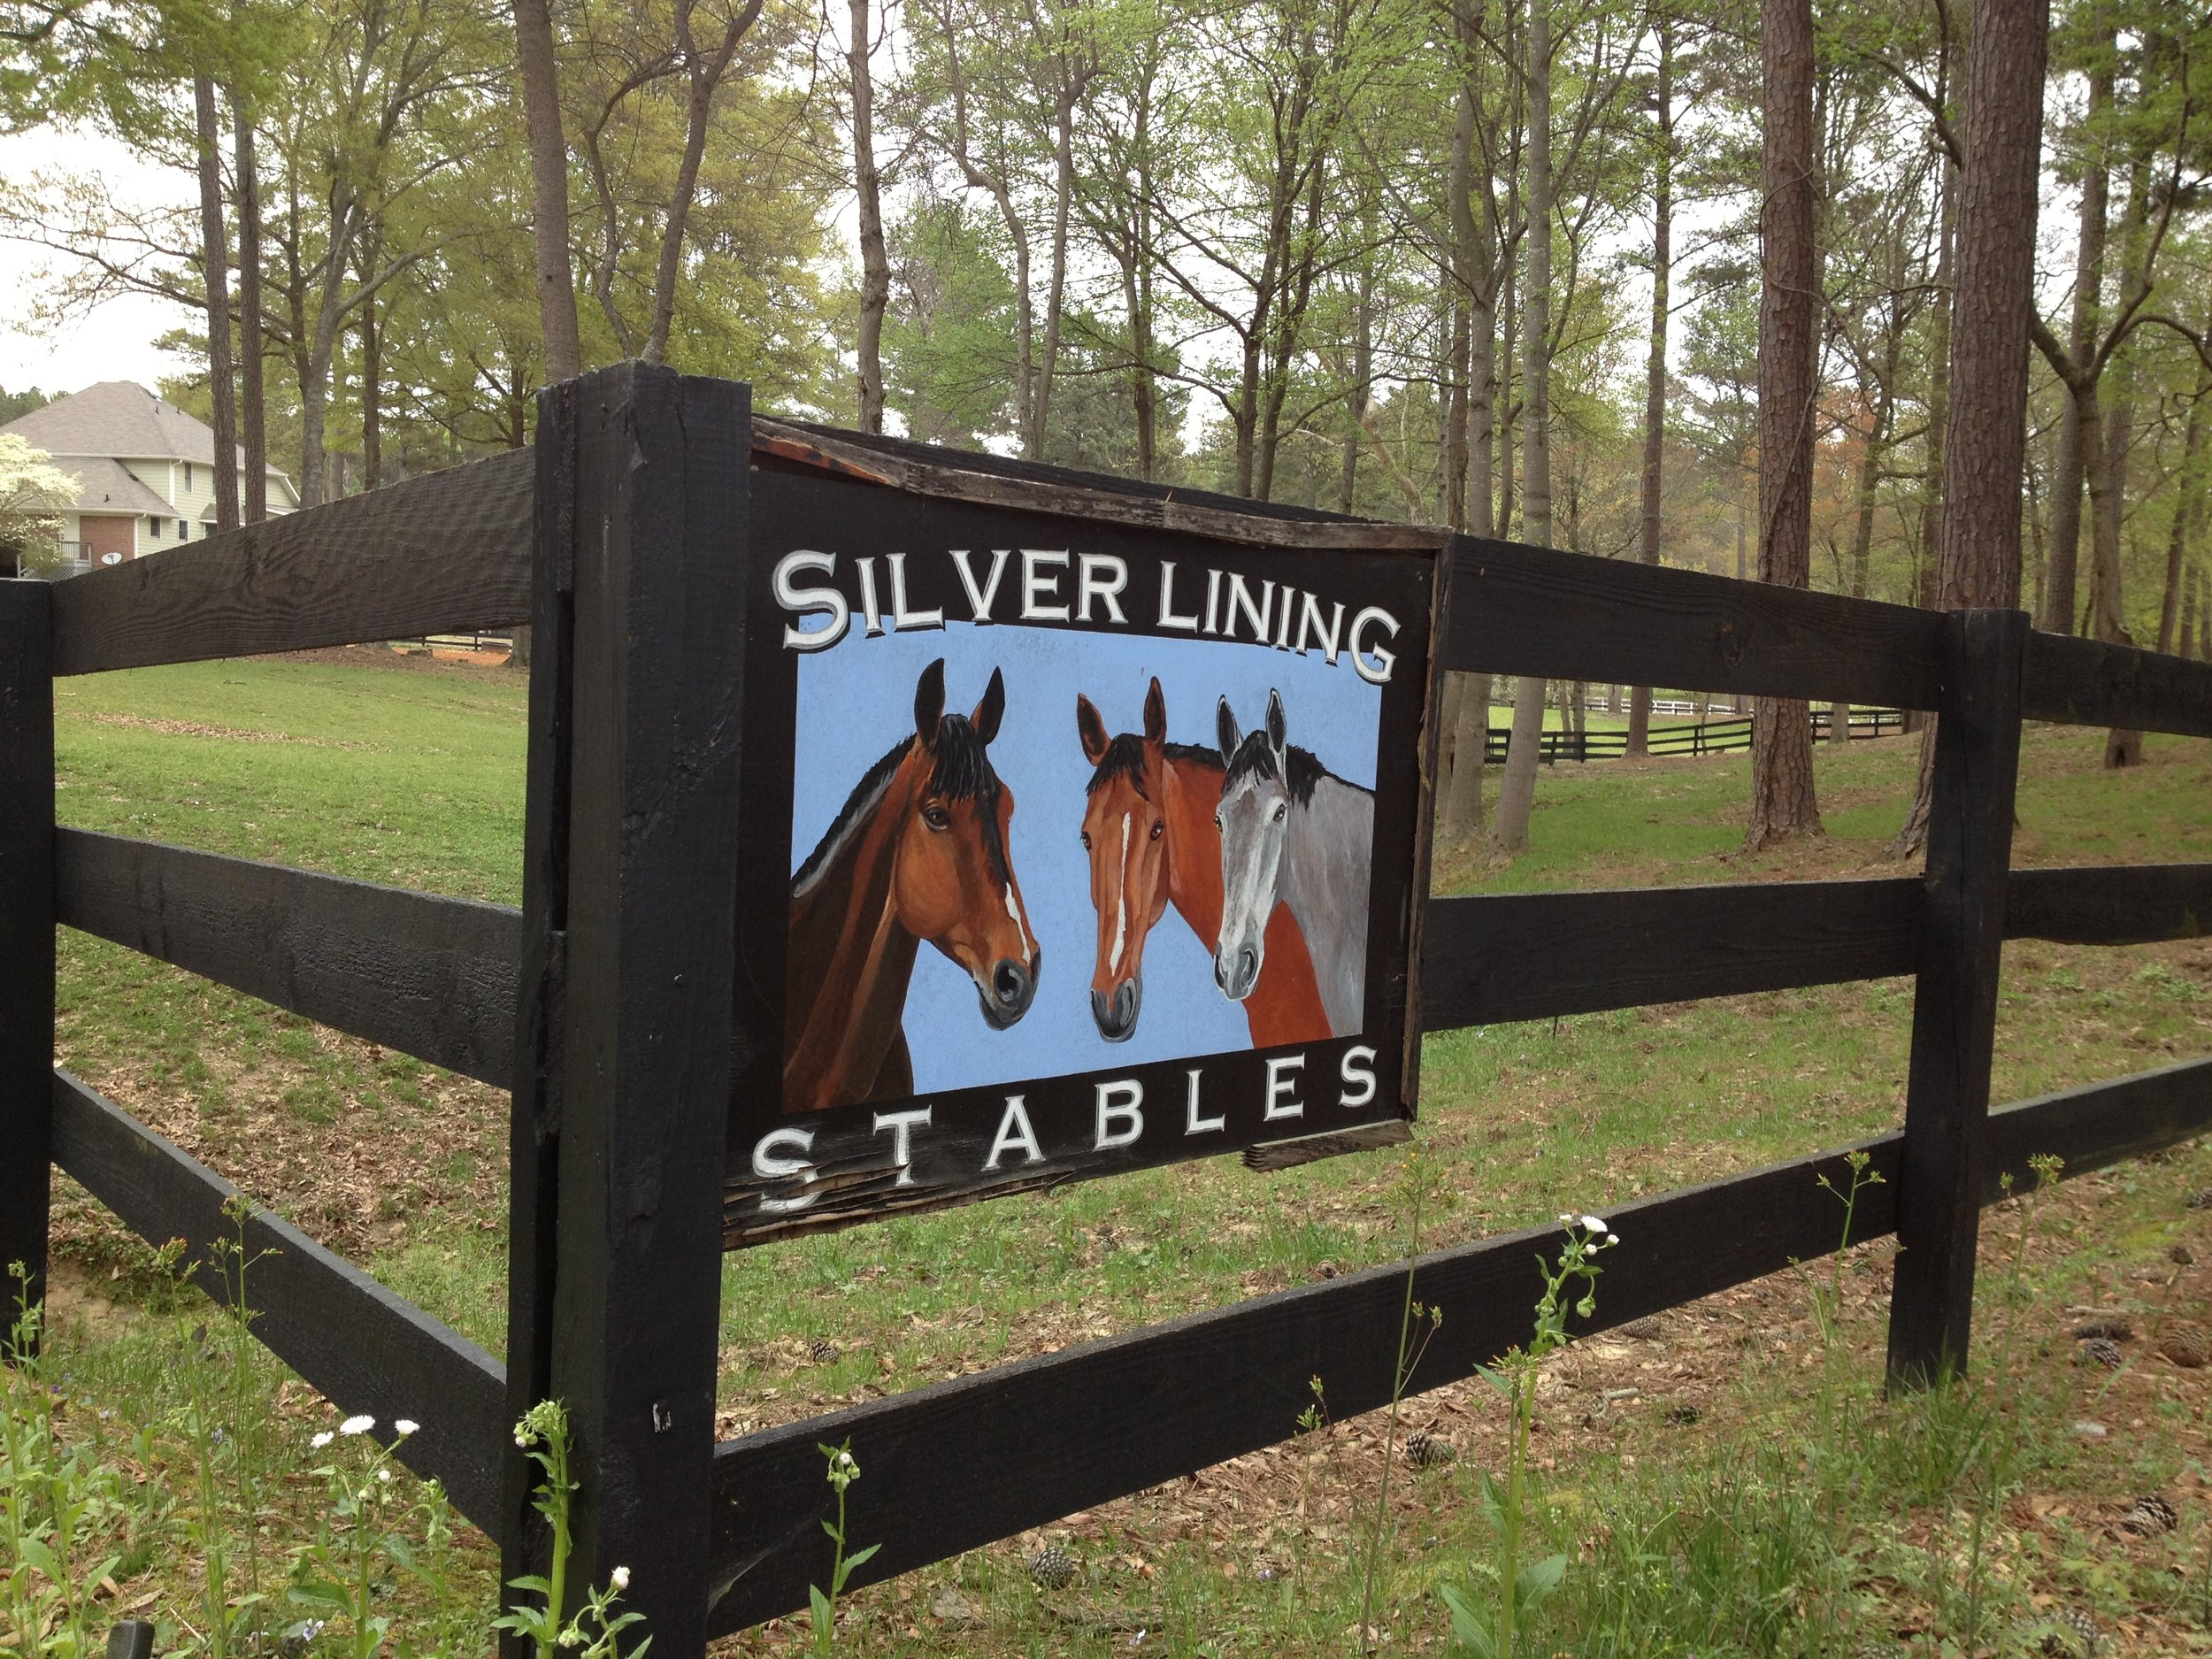 Silver Lining Stables